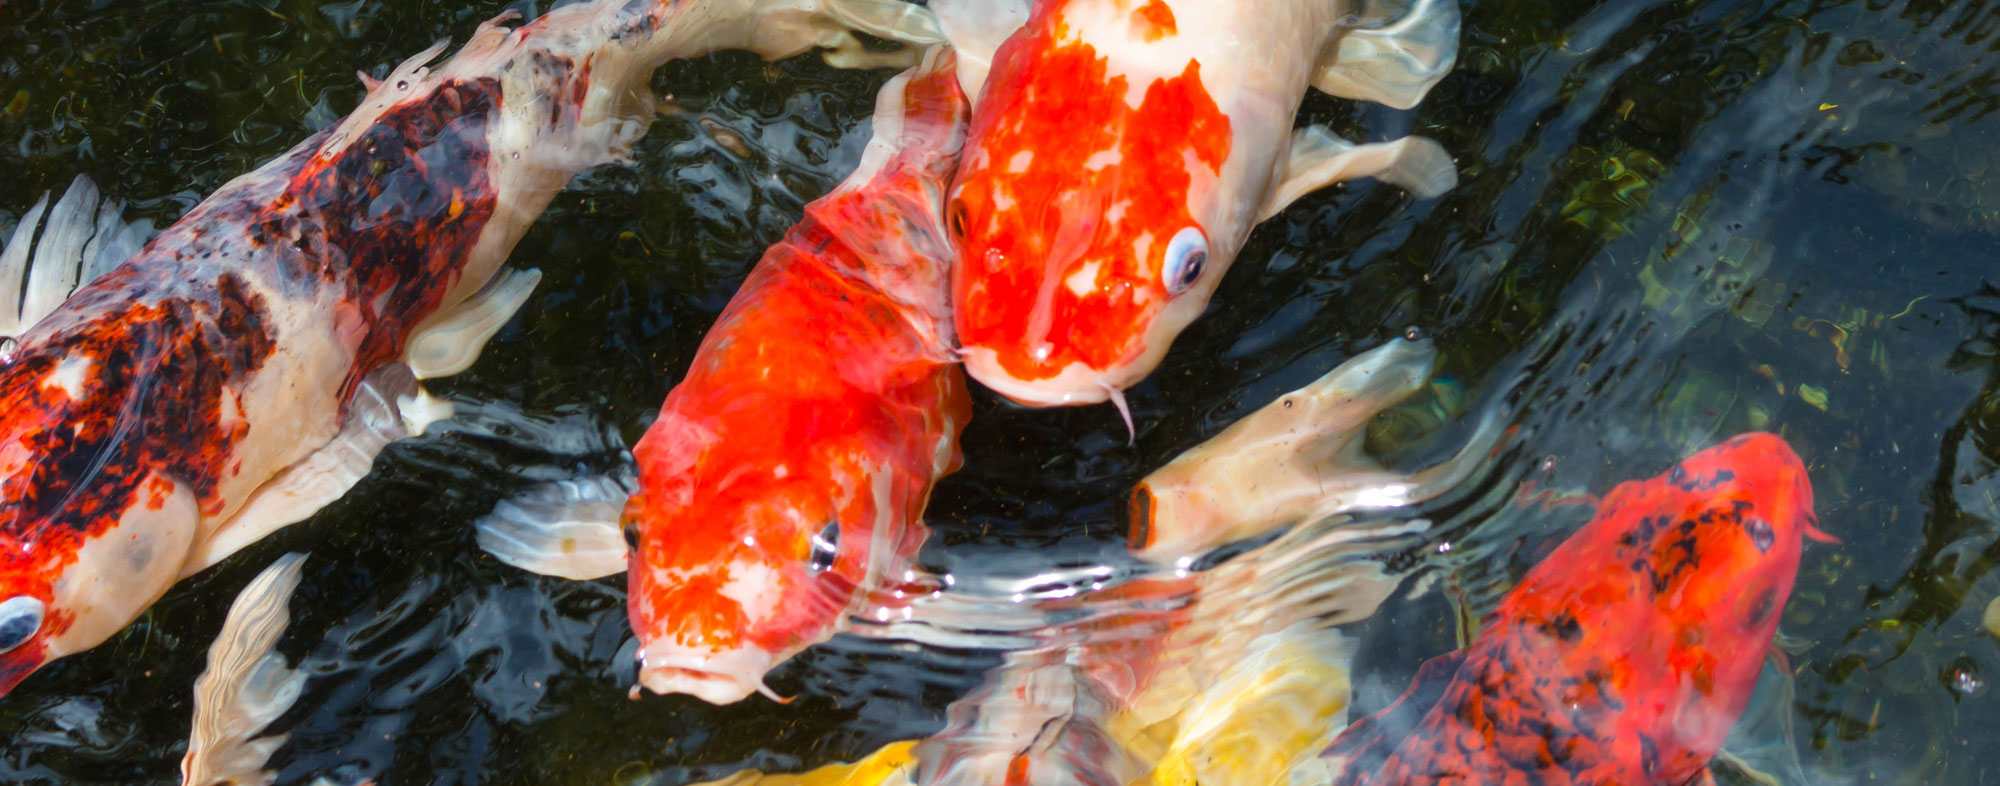 A school of pet fish in an outdoor pond, gathering to feed on food